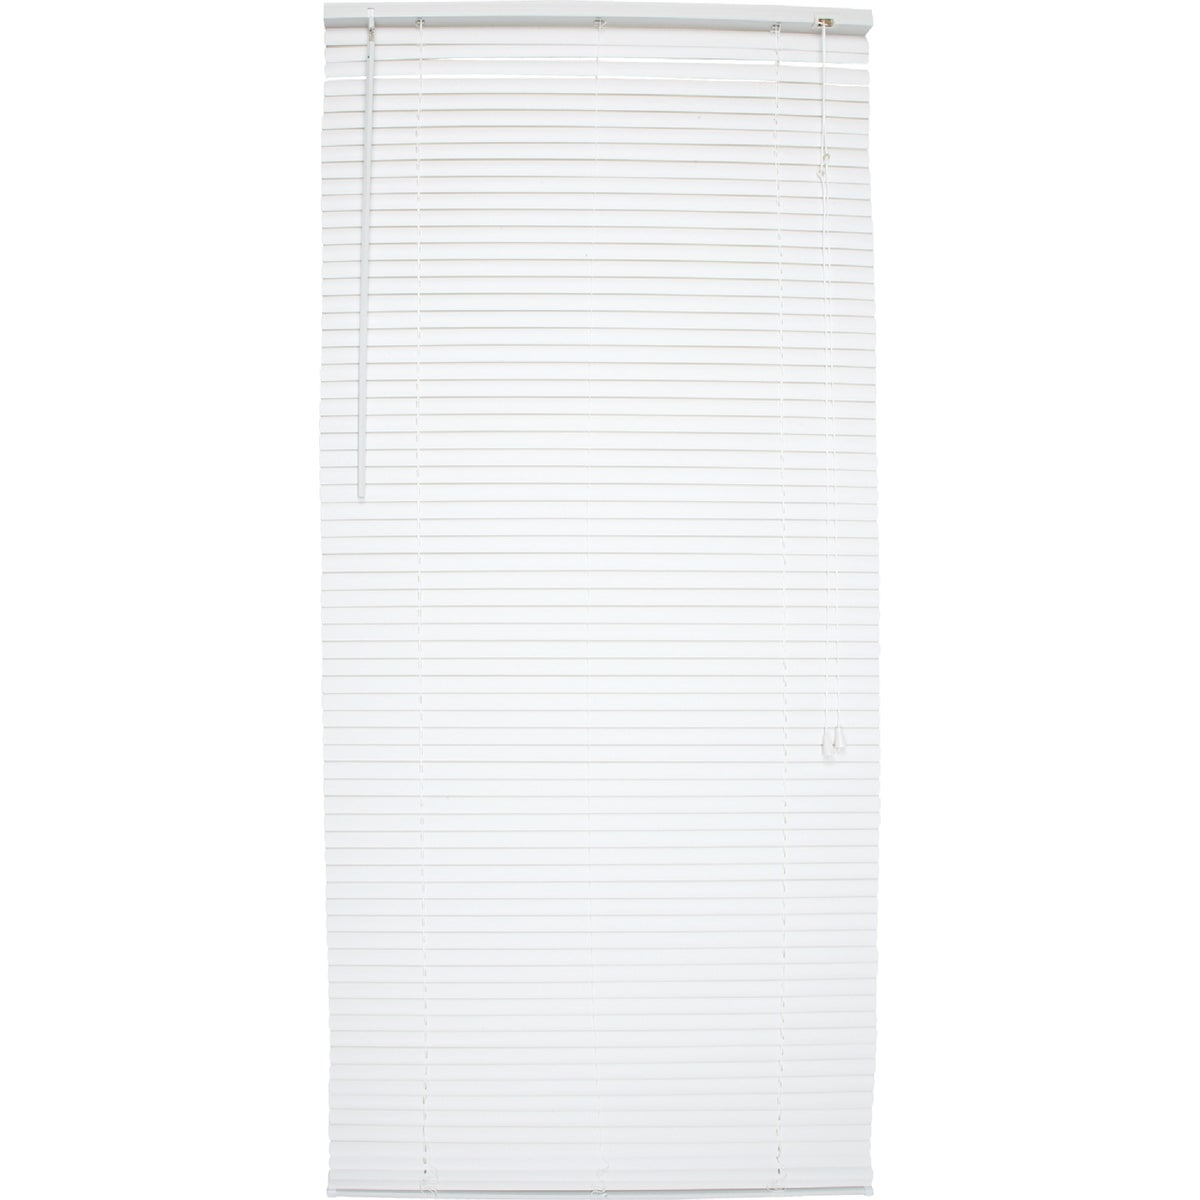 38X72 WHITE MINI BLIND - 615293 by Lotus Wind Incom